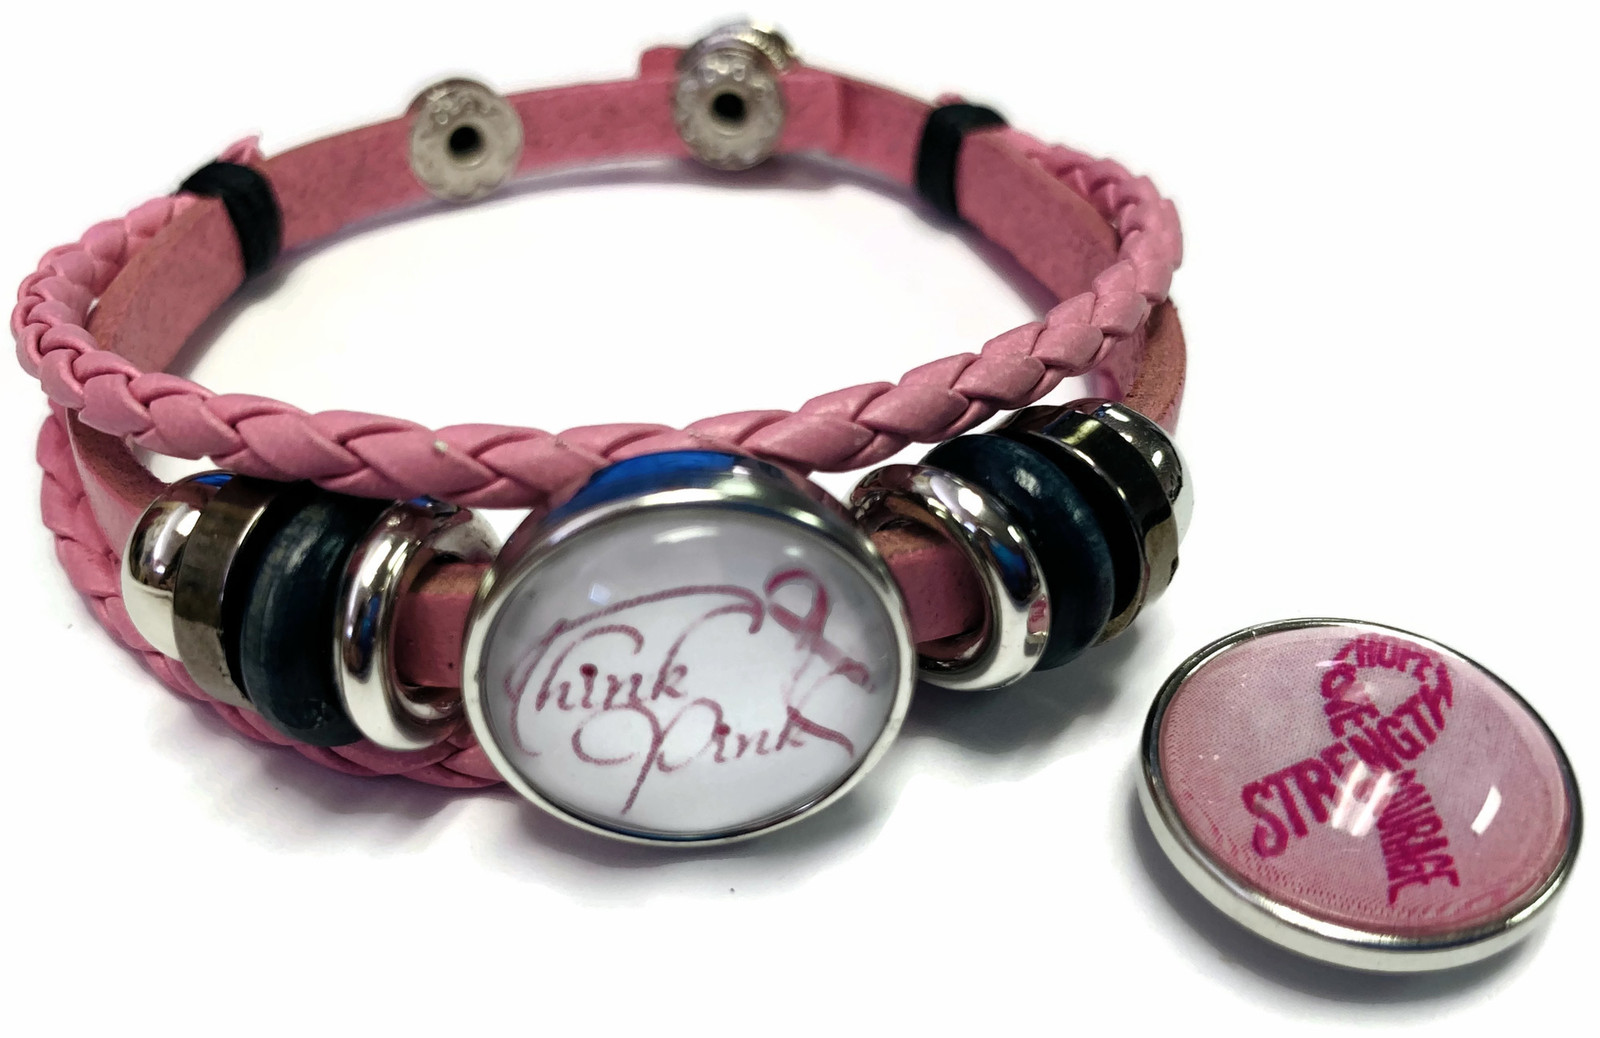 Think Pink Breast Cancer Snaps On Pink Leather Bracelet W/2 Snap Jewelry Charms